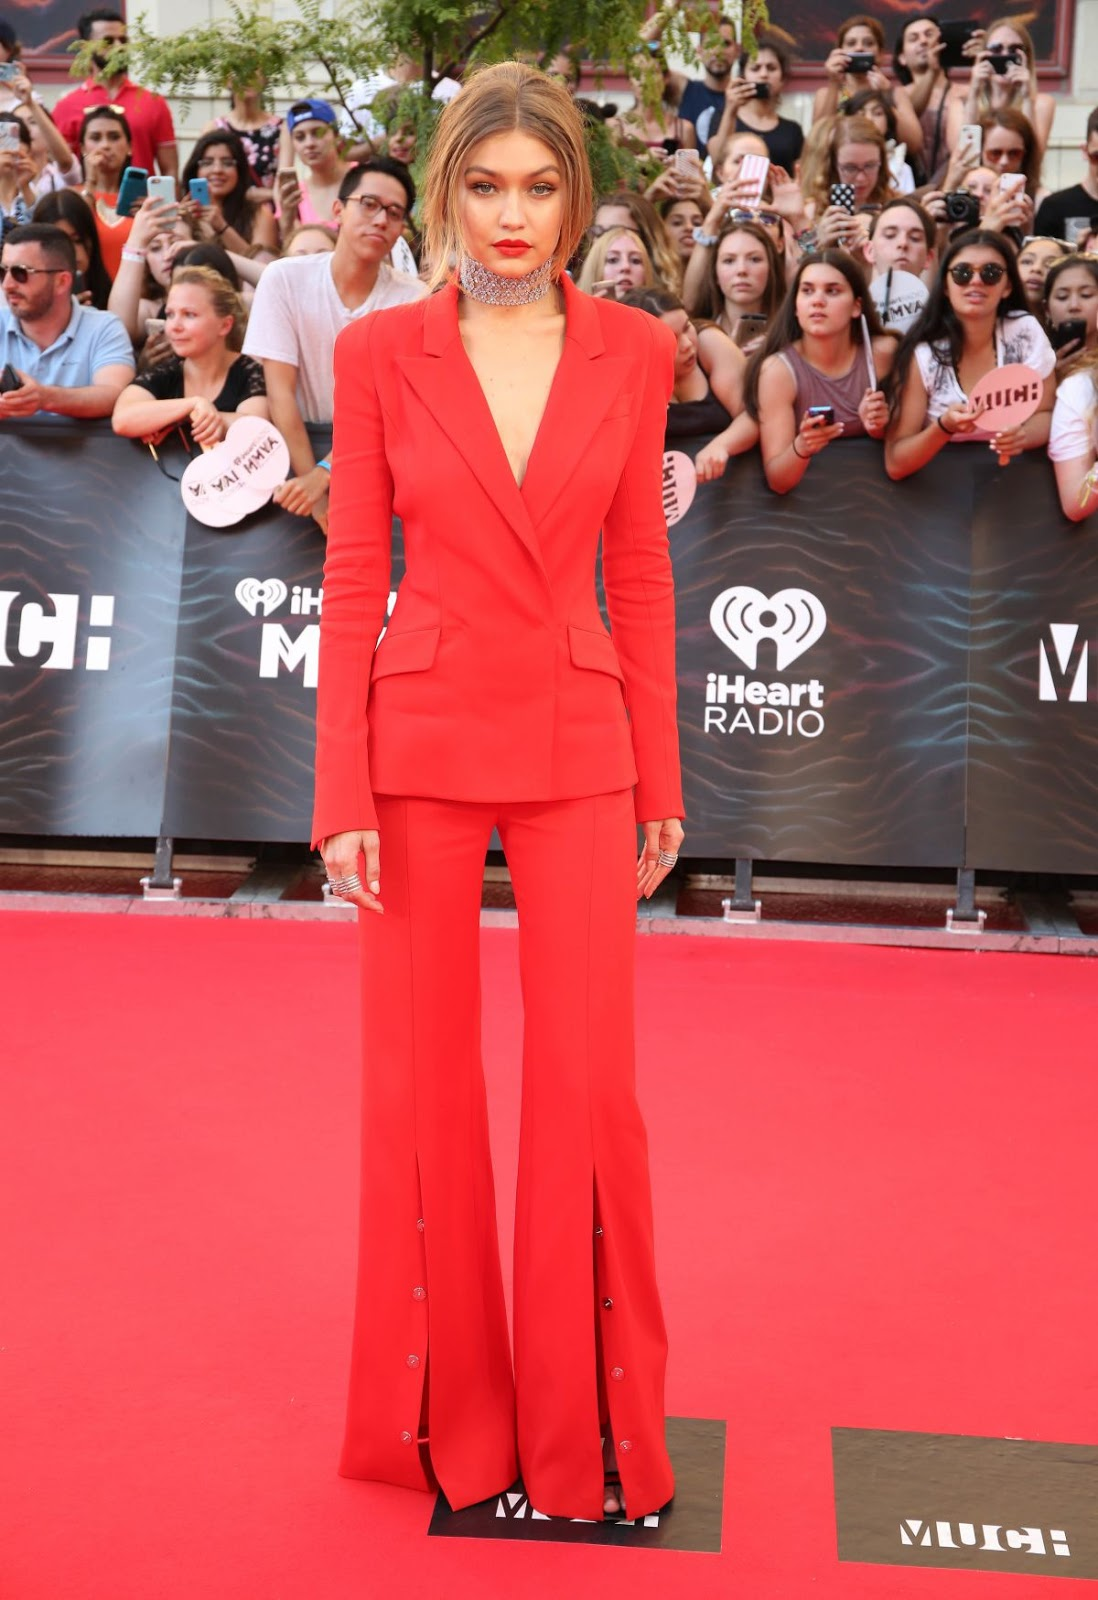 HD Photos of Gigi Hadid at iHeartRADIO MuchMusic Video Awards 2016 in Toronto, Canada